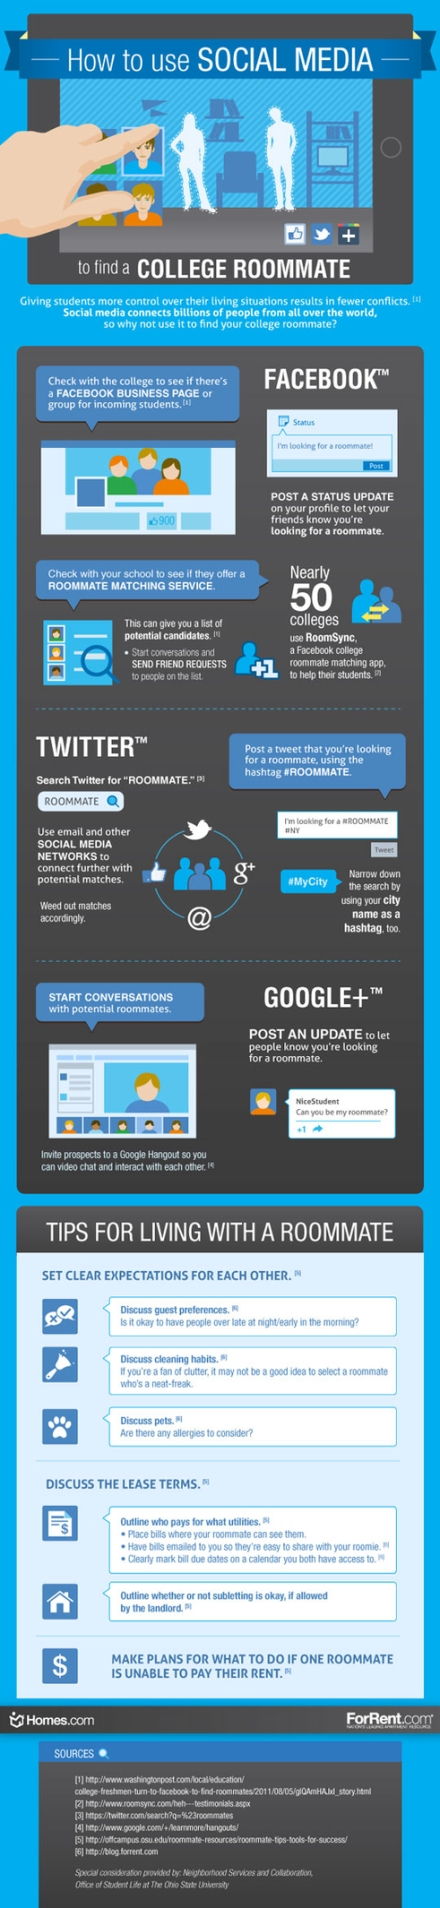 An infographic on how to use social media to find a roommate